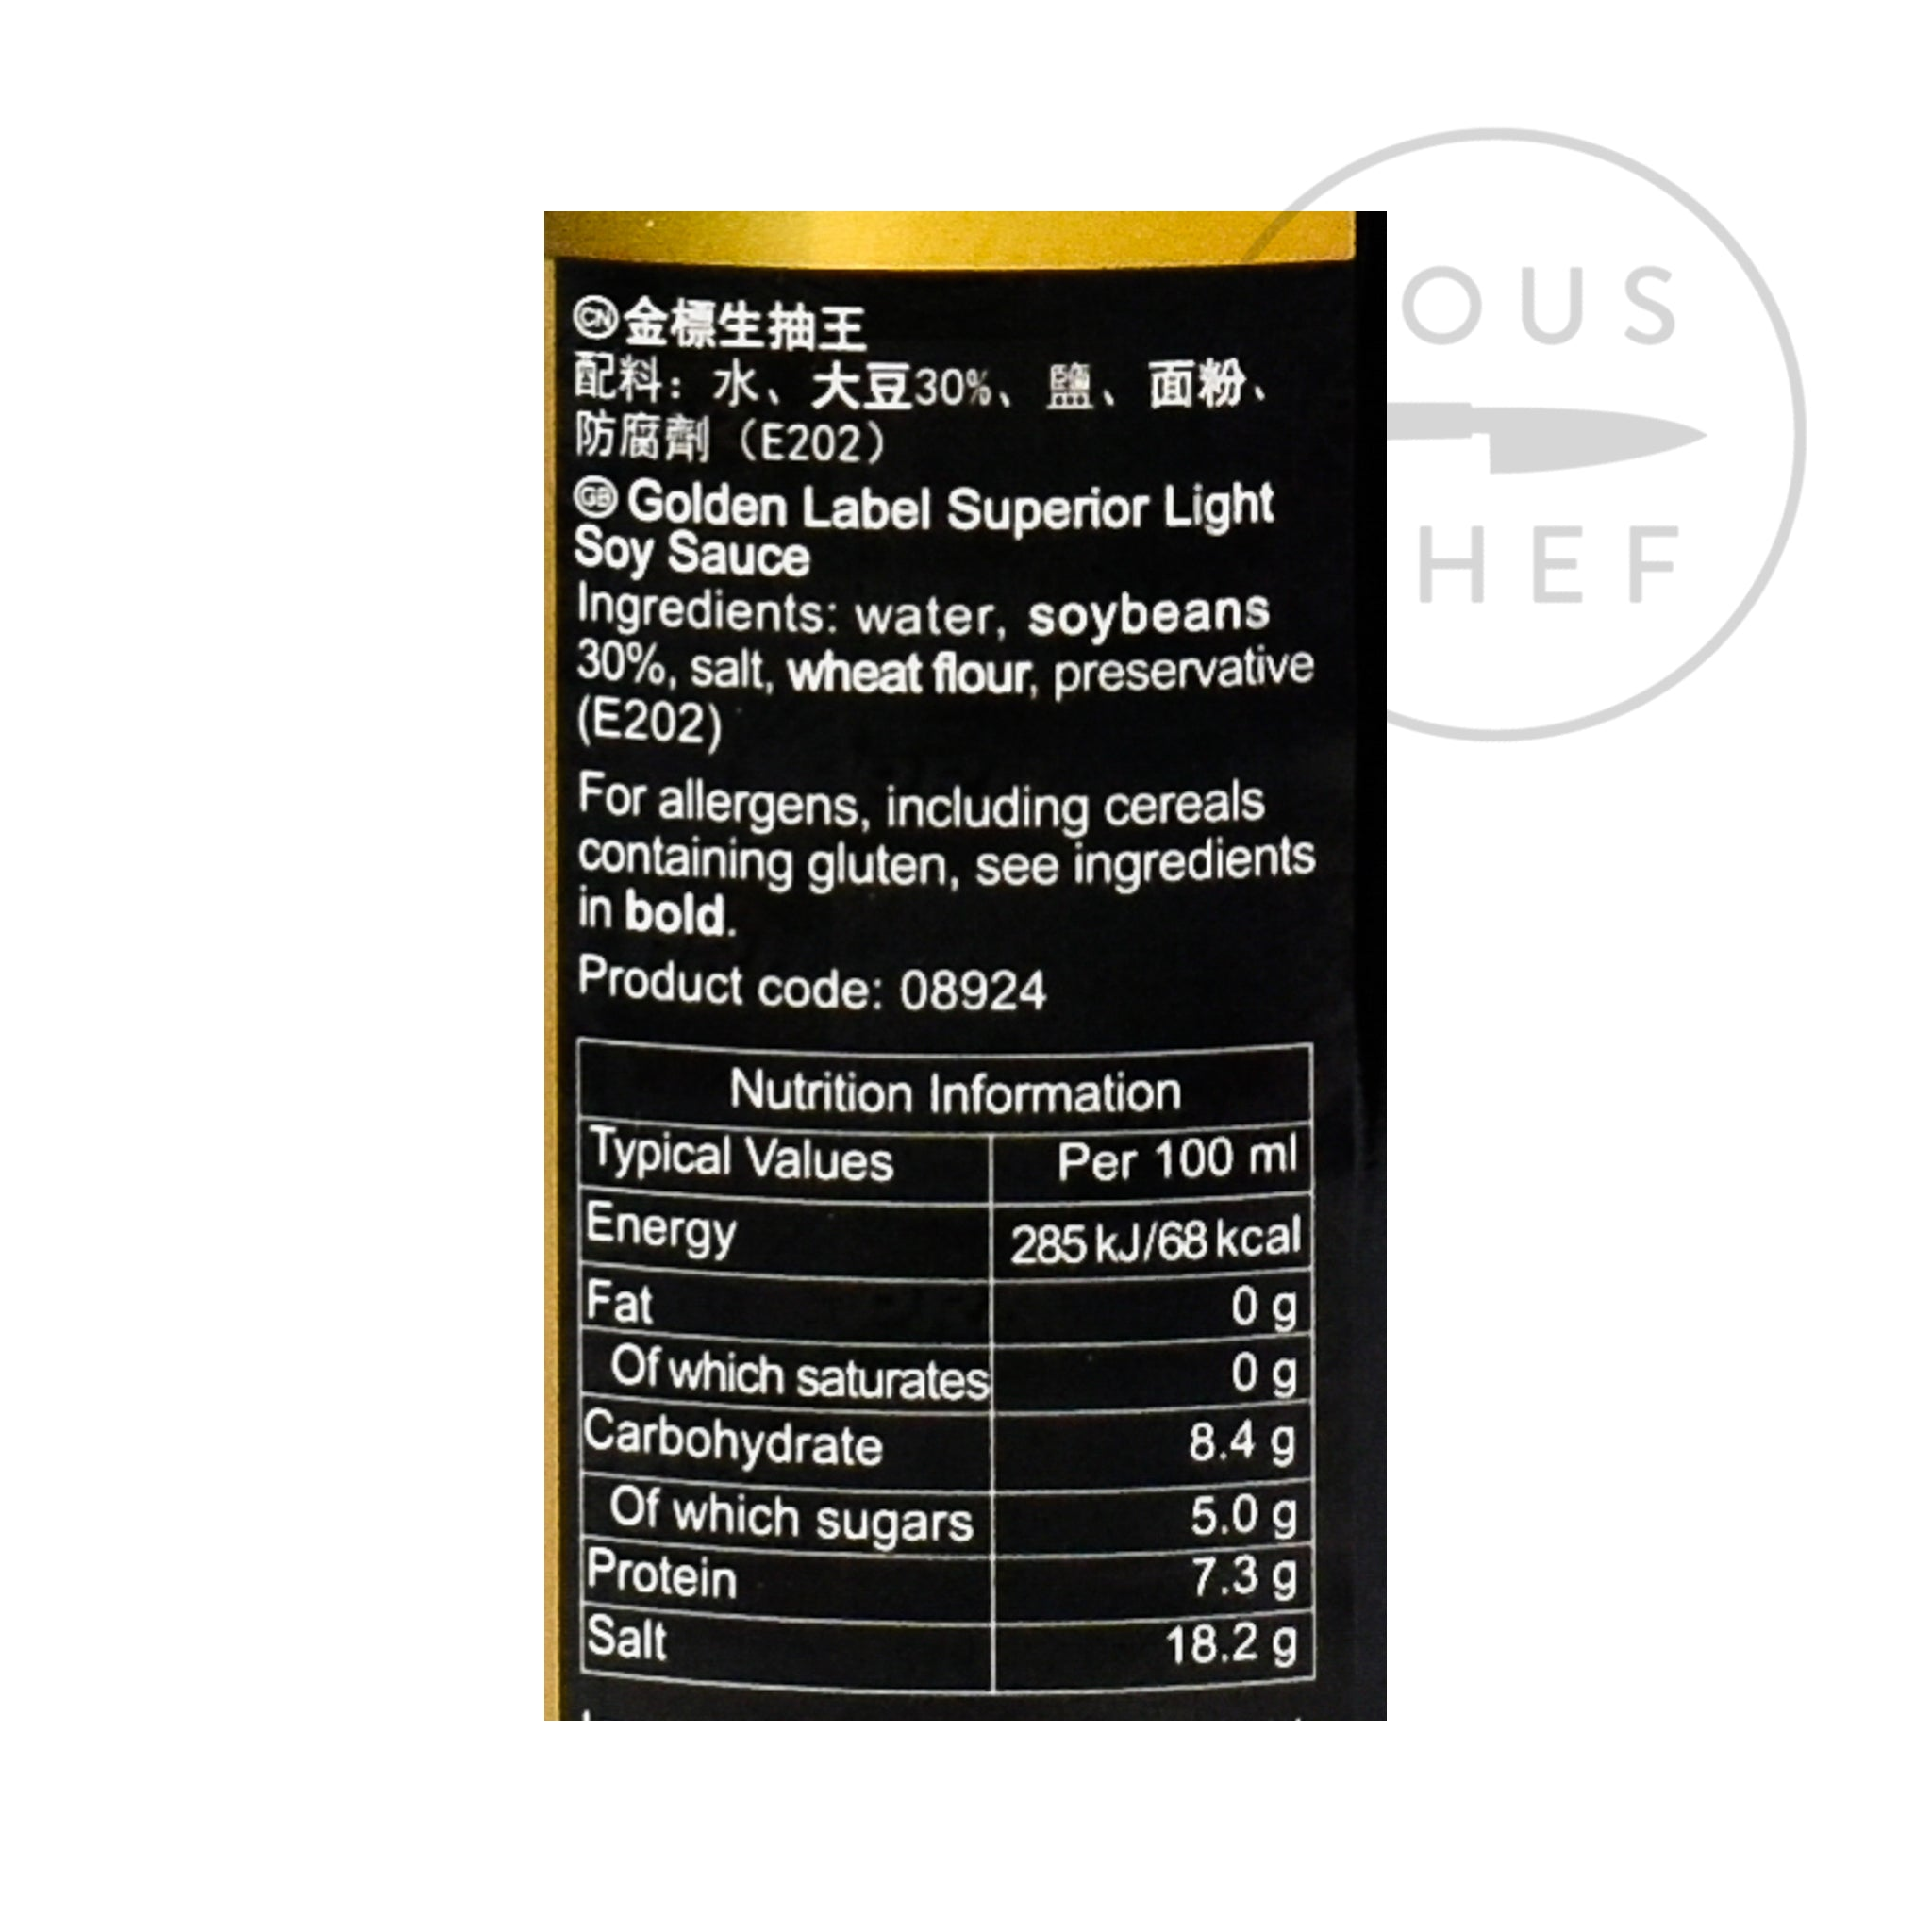 Superior Gold Label Light Soy Sauce 500ml